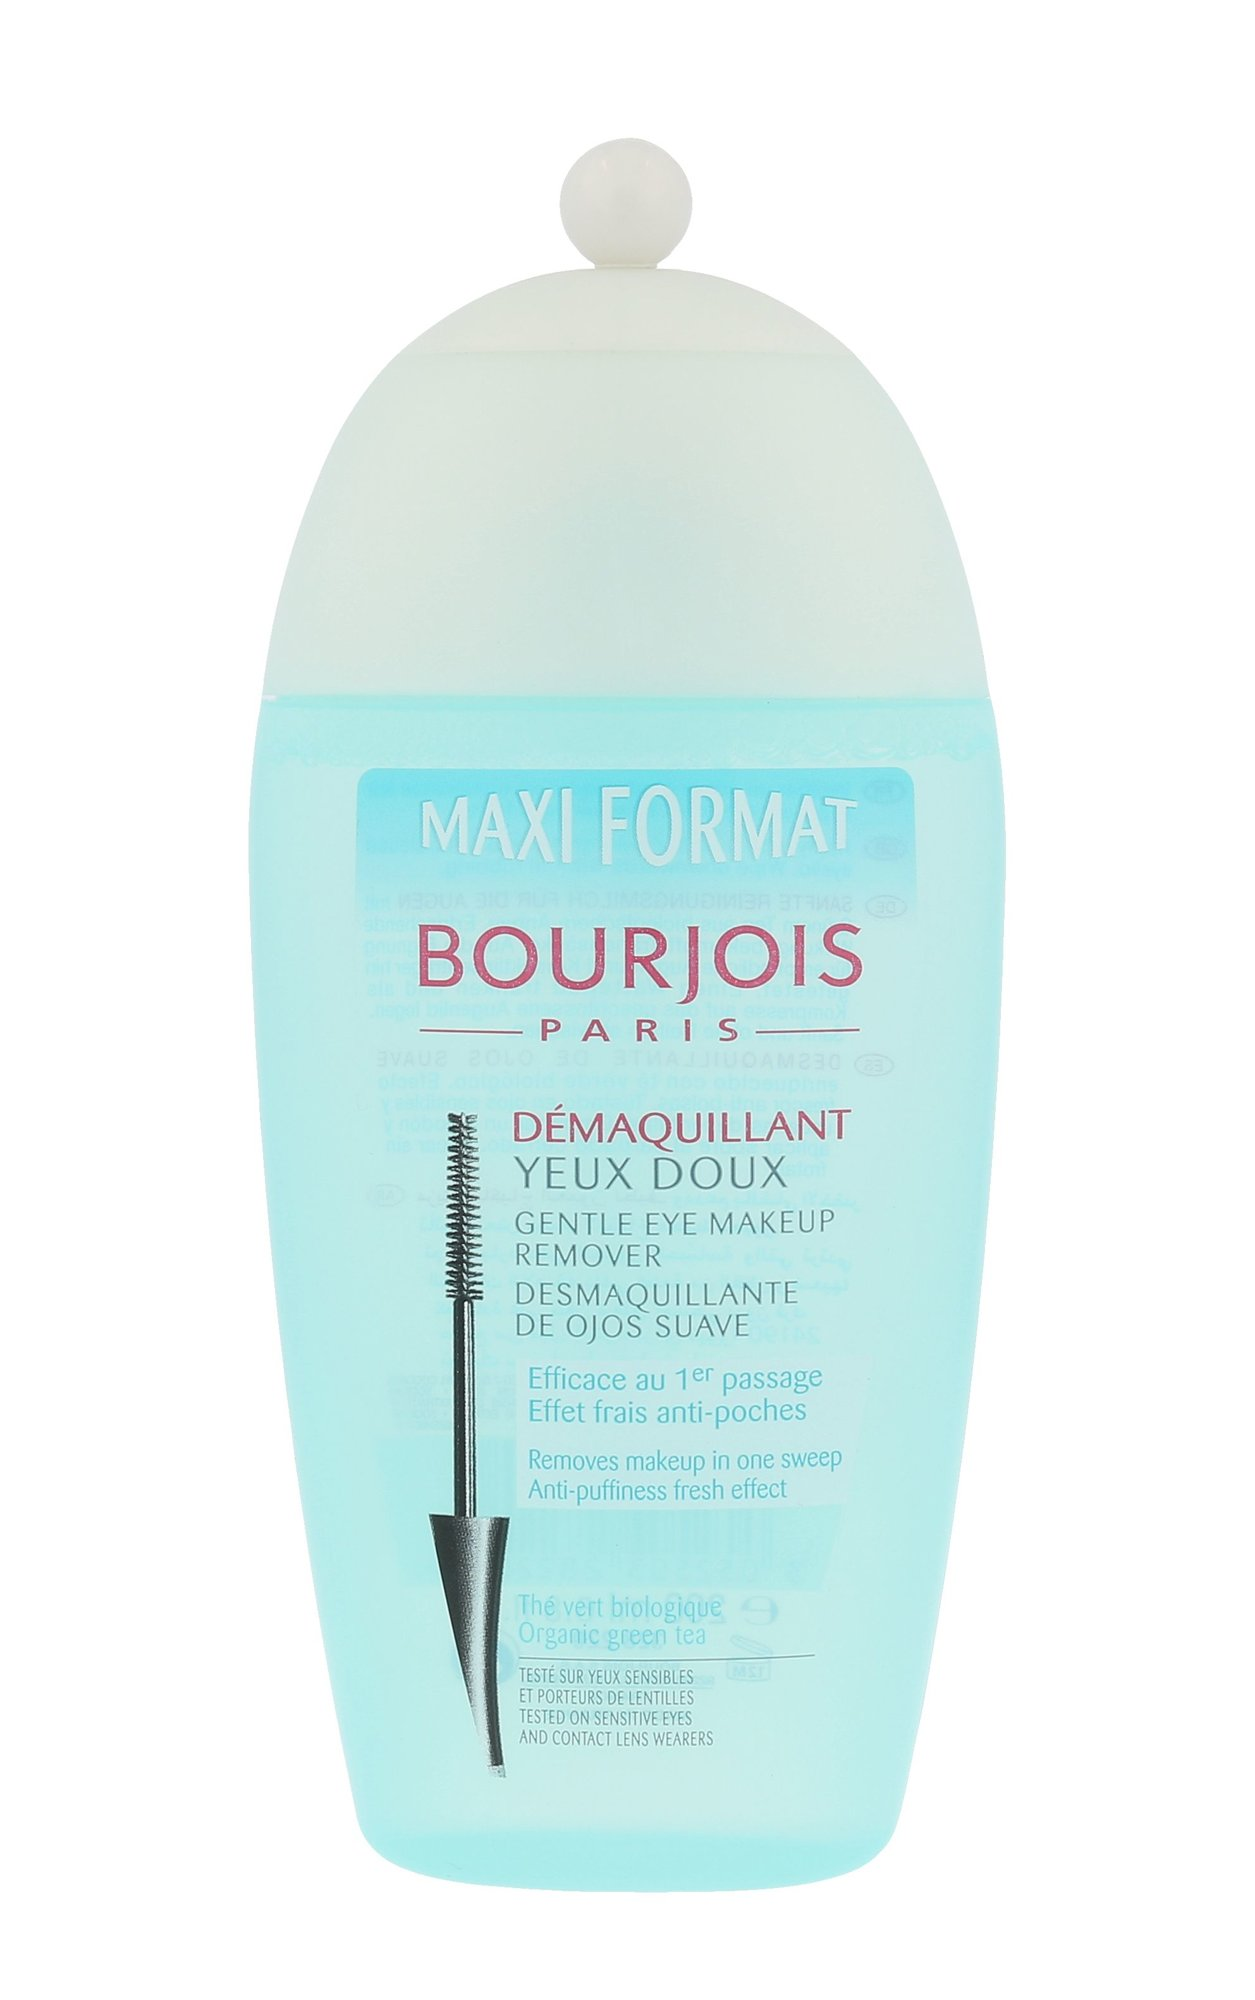 Blakstienų tušo valiklis BOURJOIS Paris Gentle Eye Makeup Remover